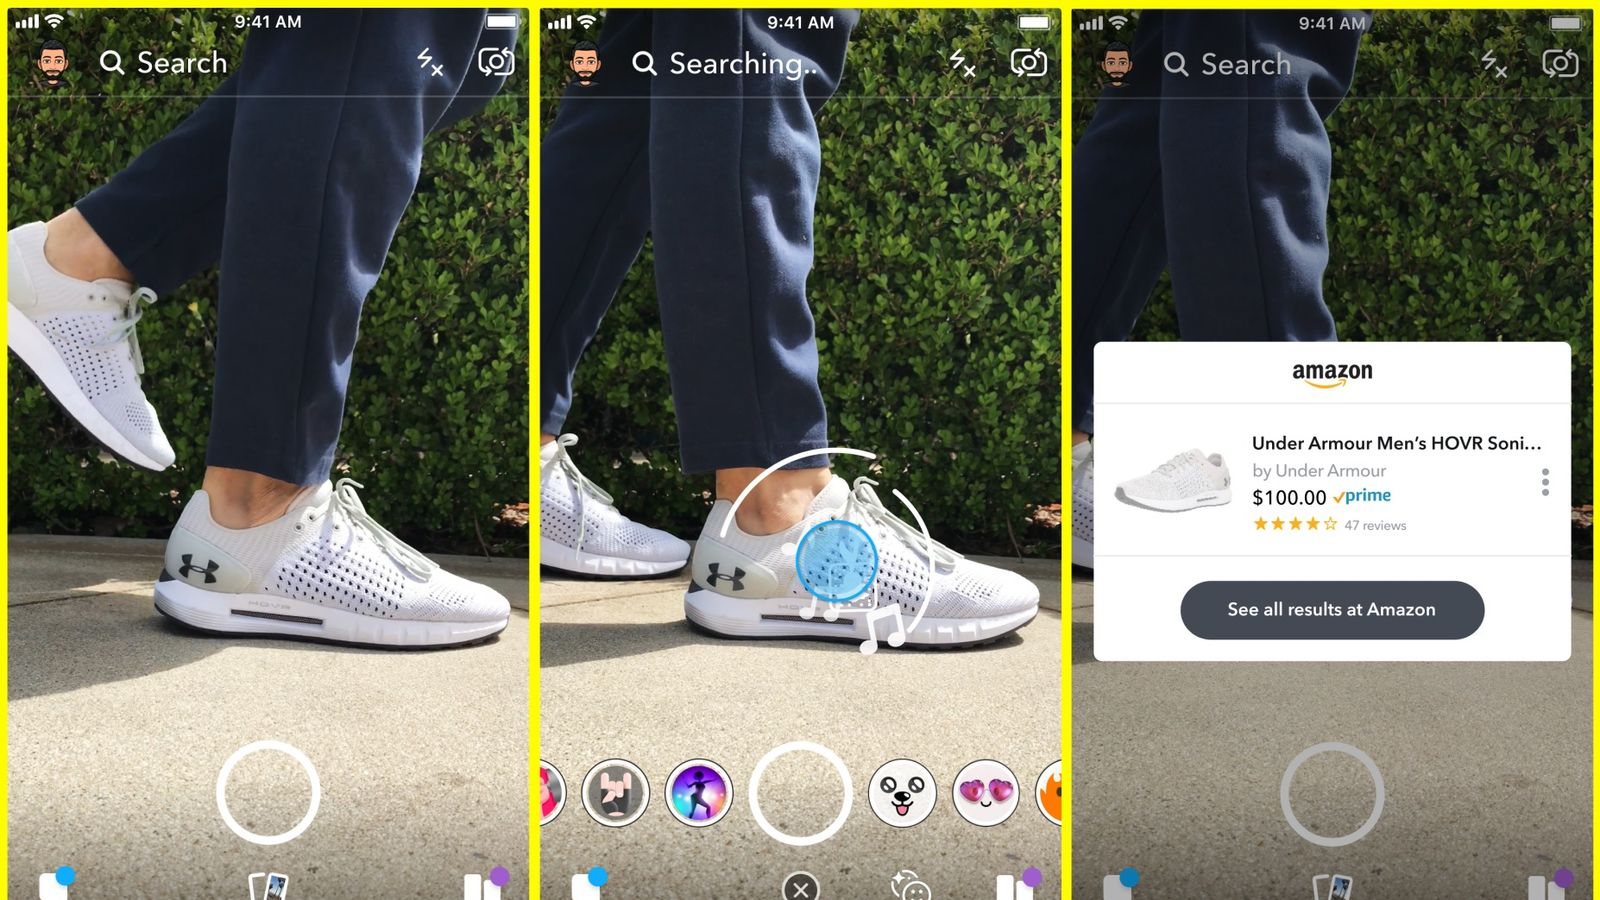 Snapchat lets you photo objects and buy them on Amazon